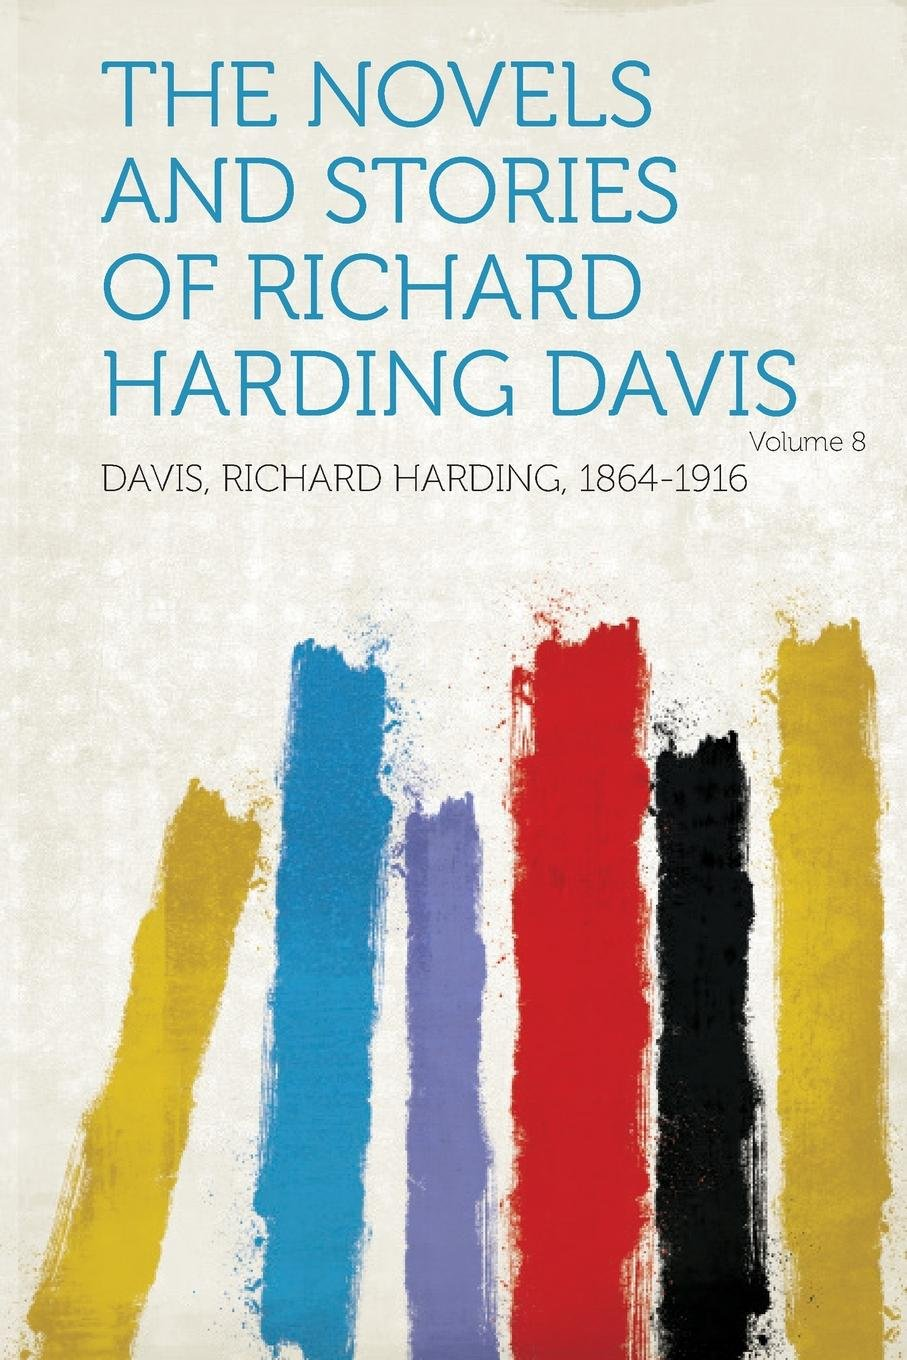 The Novels and Stories of Richard Harding Davis Volume 8 pdf